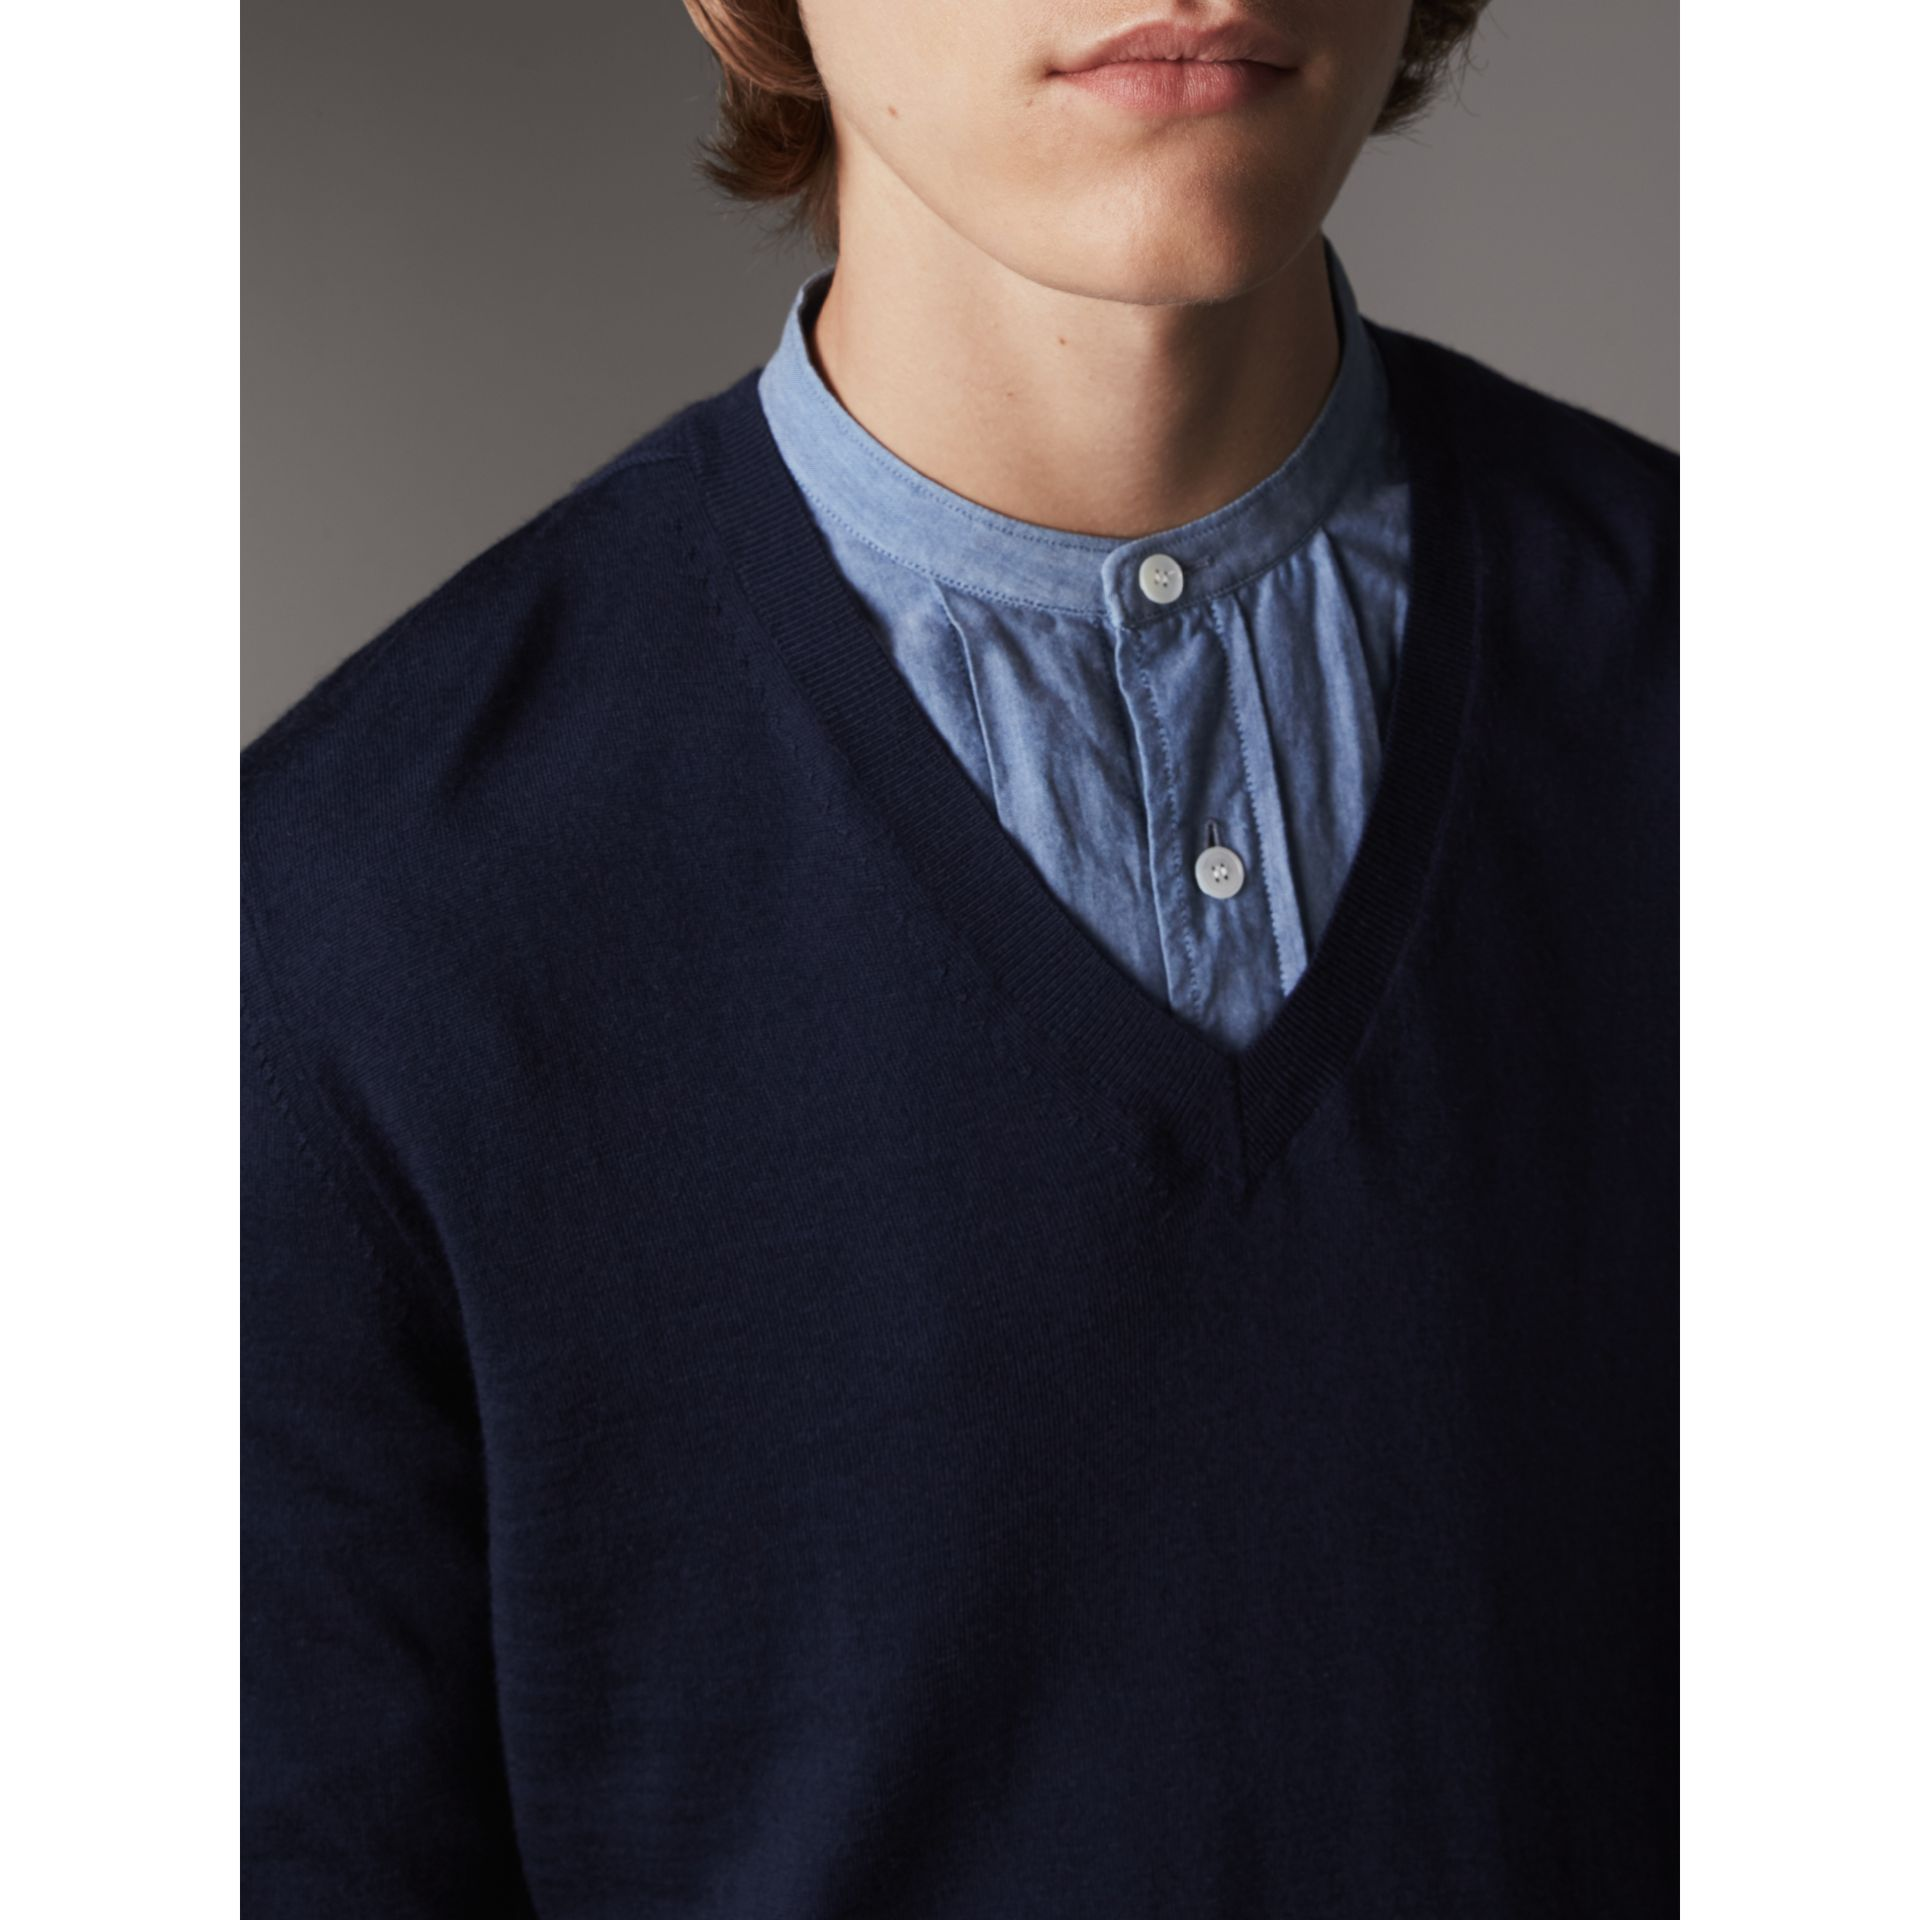 Merino Wool V-neck Sweater in Navy - Men | Burberry - gallery image 2